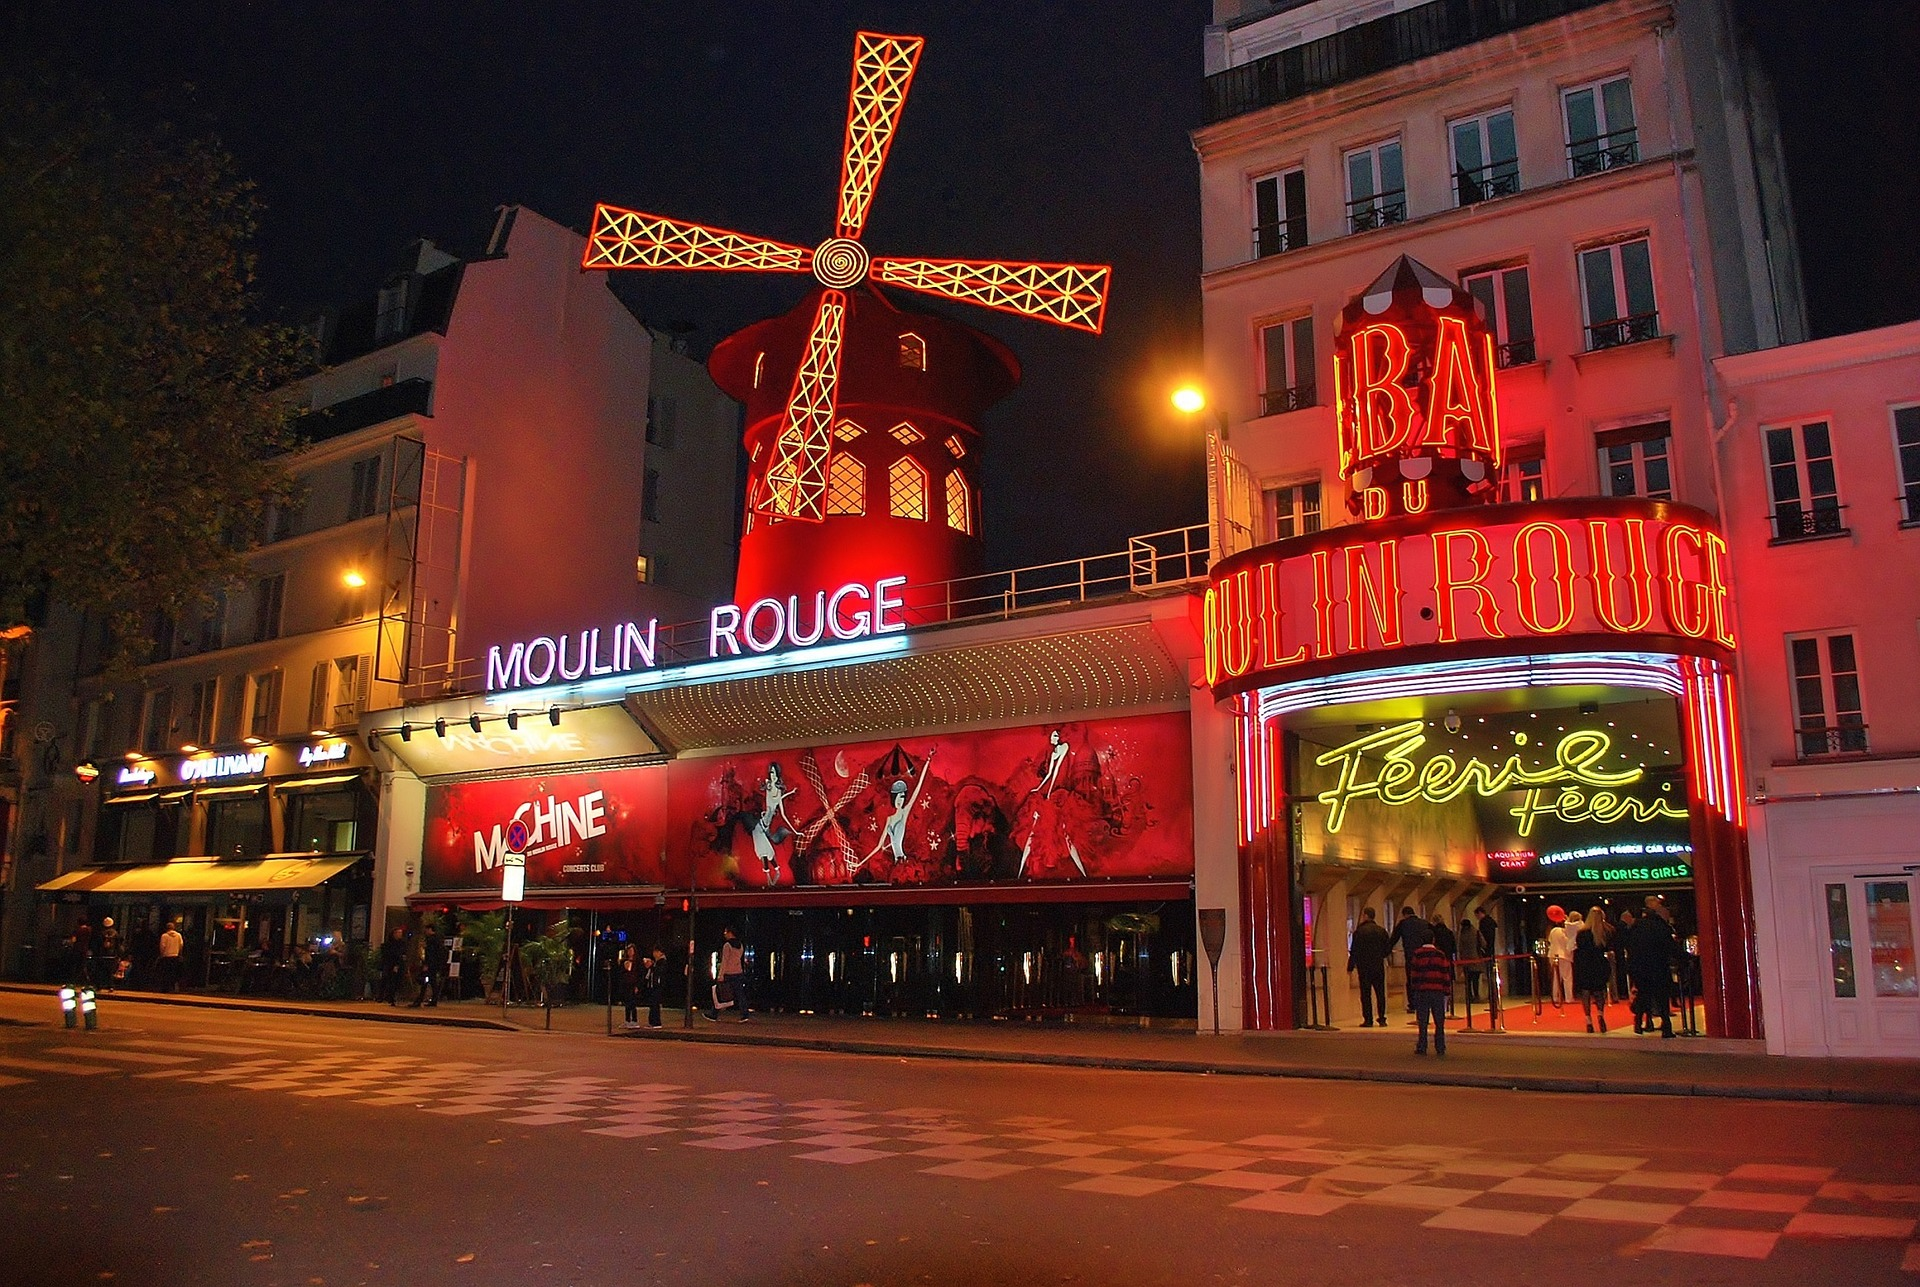 232/Libres de droit/moulin-rouge-1050325_1920.jpg